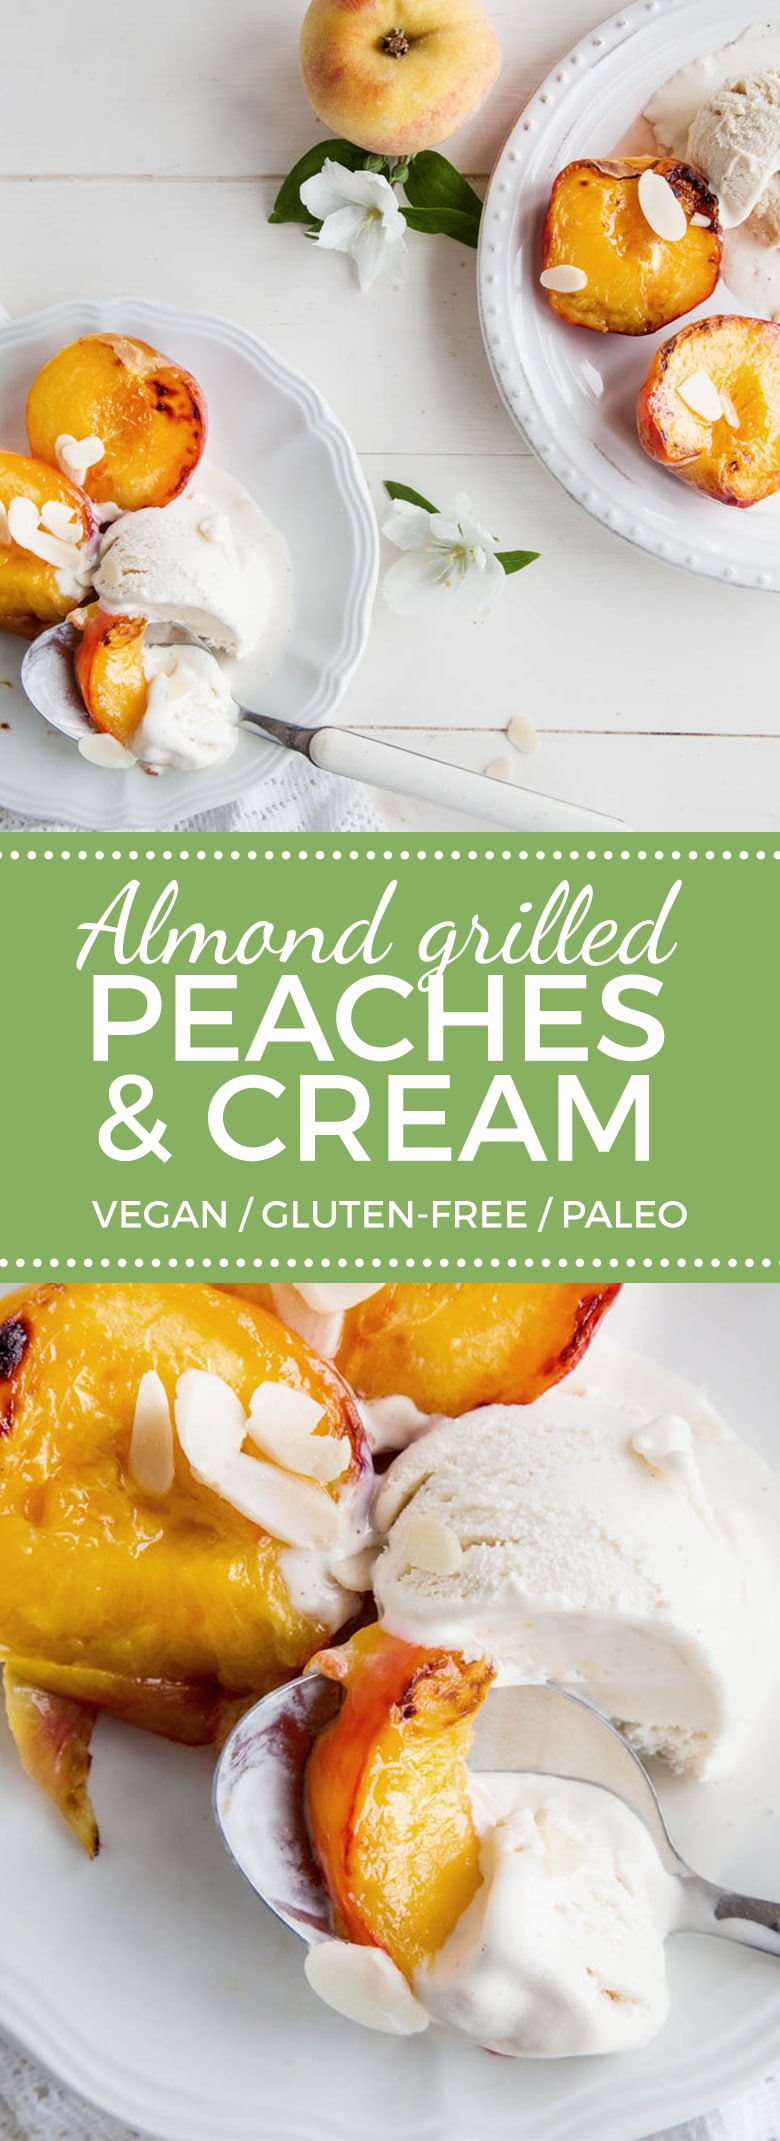 Almond Grilled Peaches & Cream (Vegan + GF)